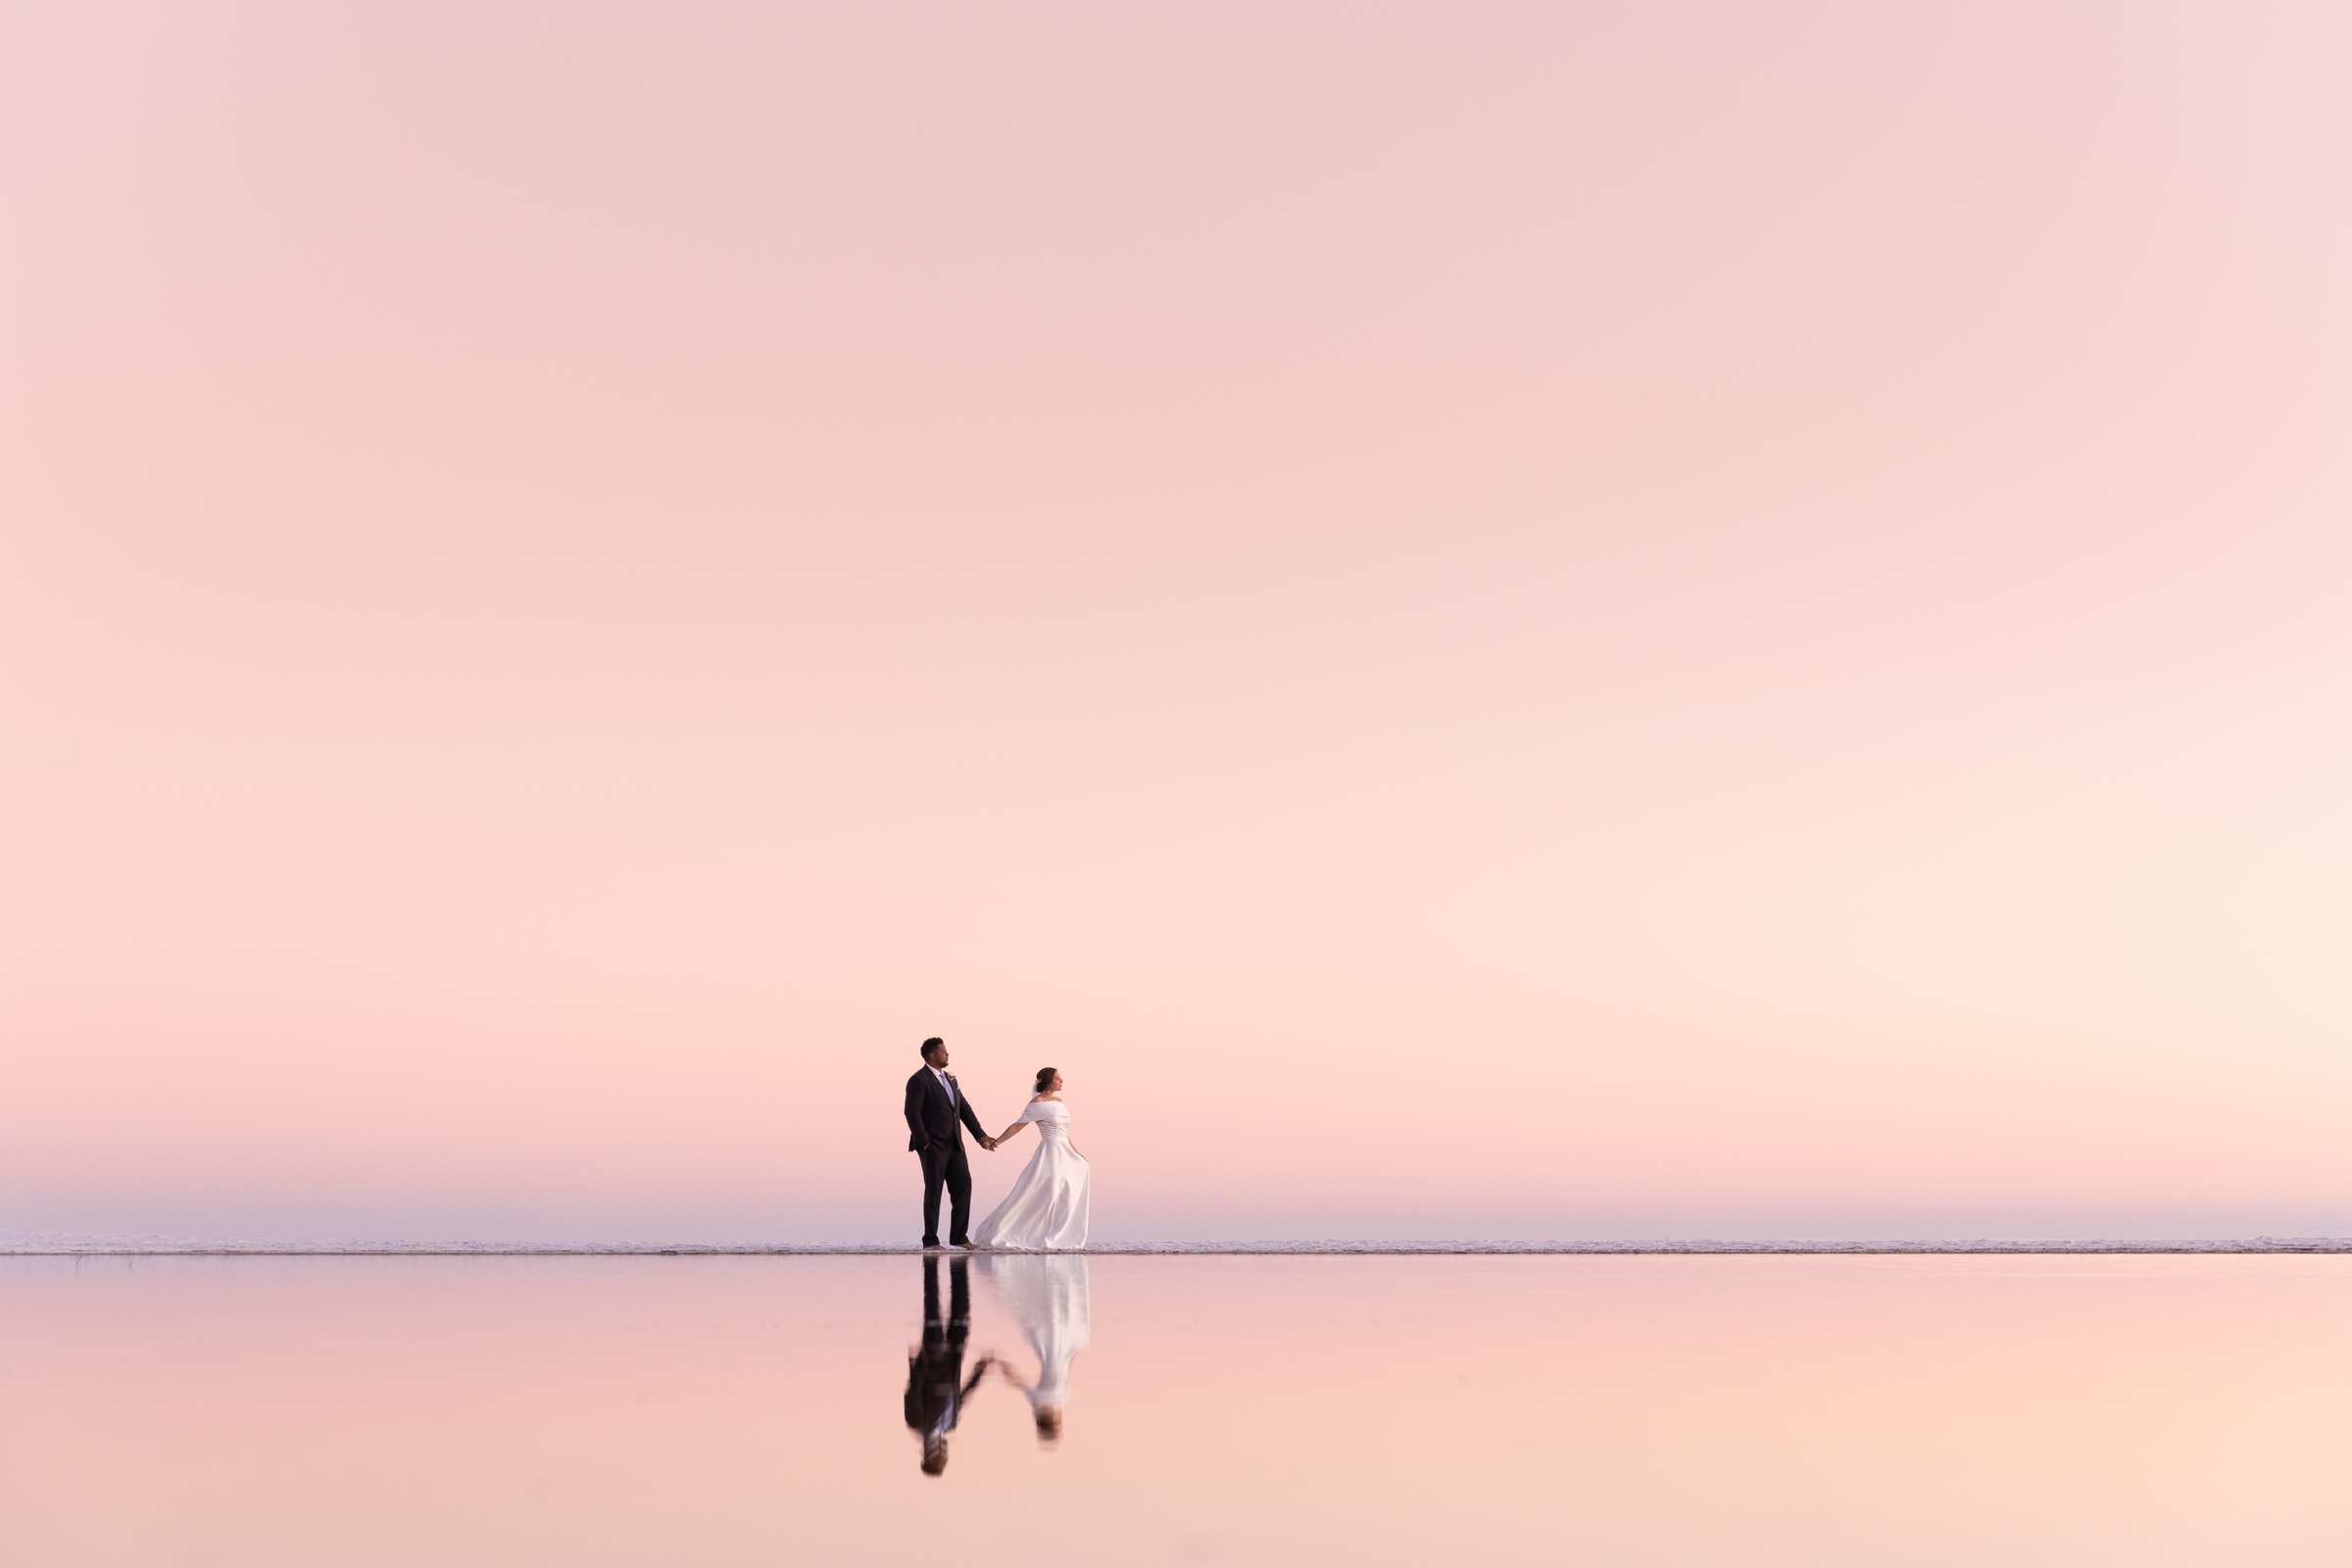 reflected-landscape-couple-against-pink-sky-modernmade-weddings